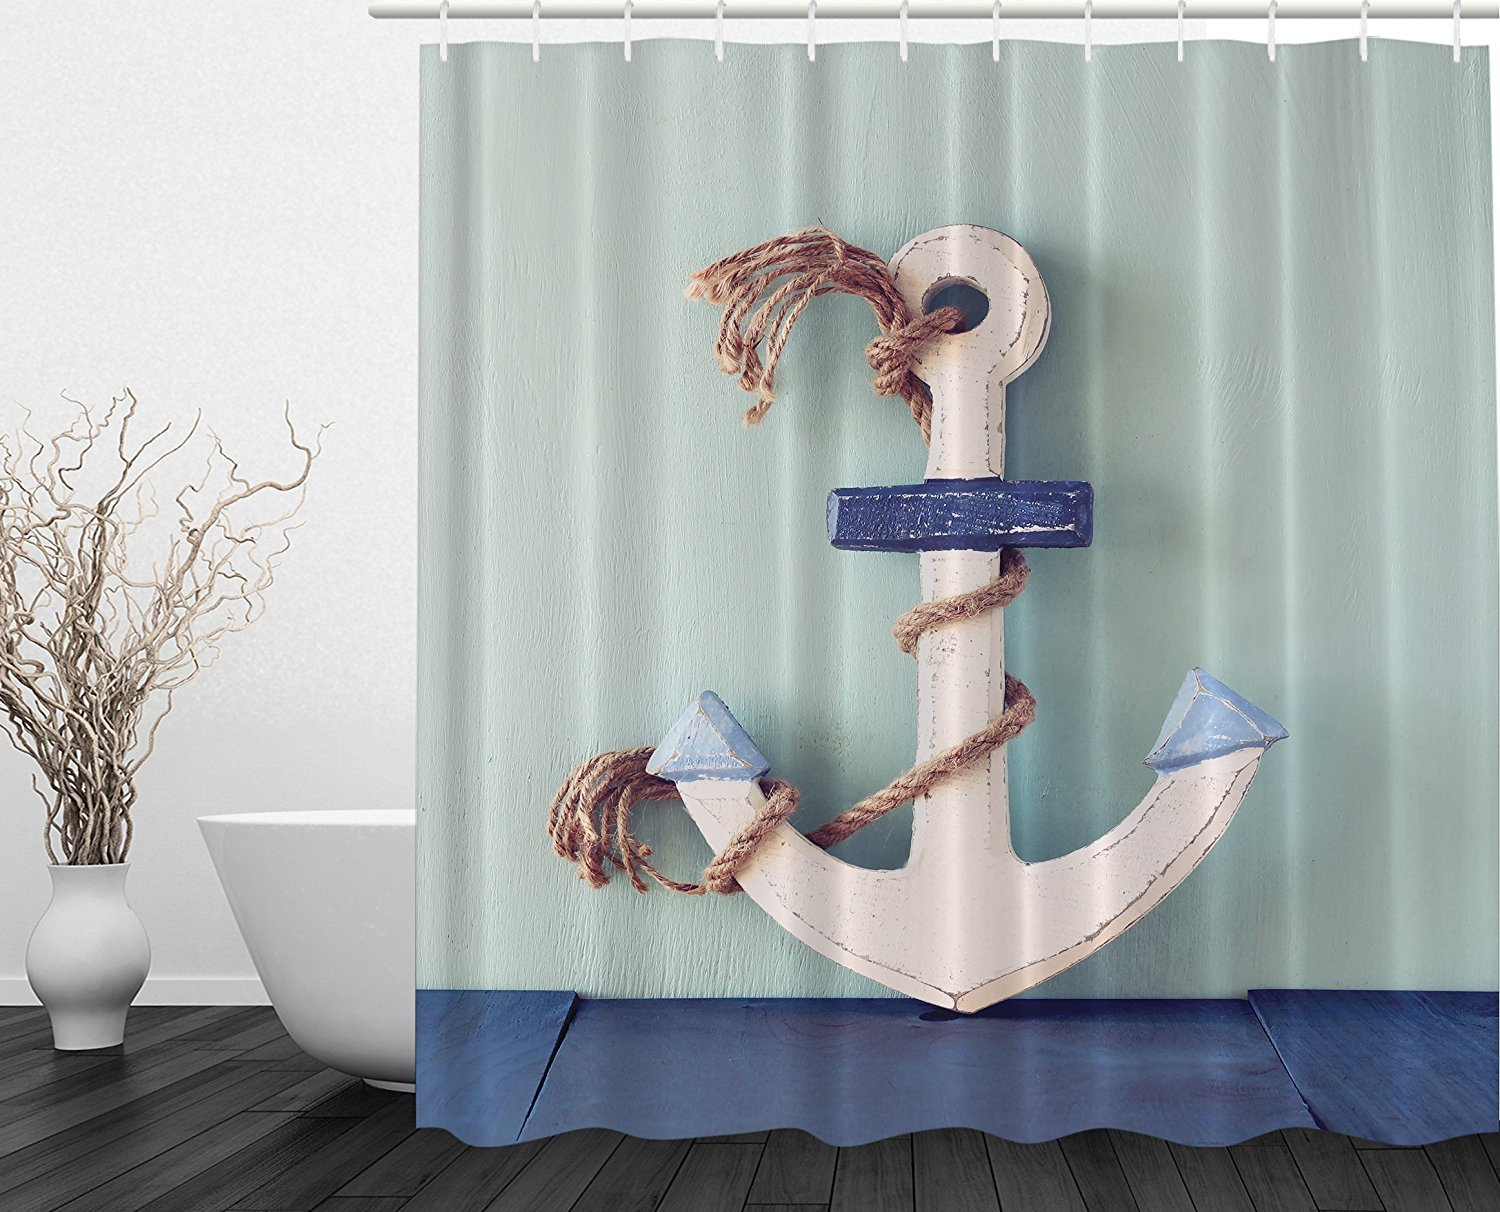 Making nautical bathroom d 233 cor by yourself bathroom designs ideas - Amazon Com Anchor Decor Wooden White Rusty Marine Boating Anchor And Rope Nautical Coastal Home Decor Bathroom Decorating Set Modern Exclusive Designer